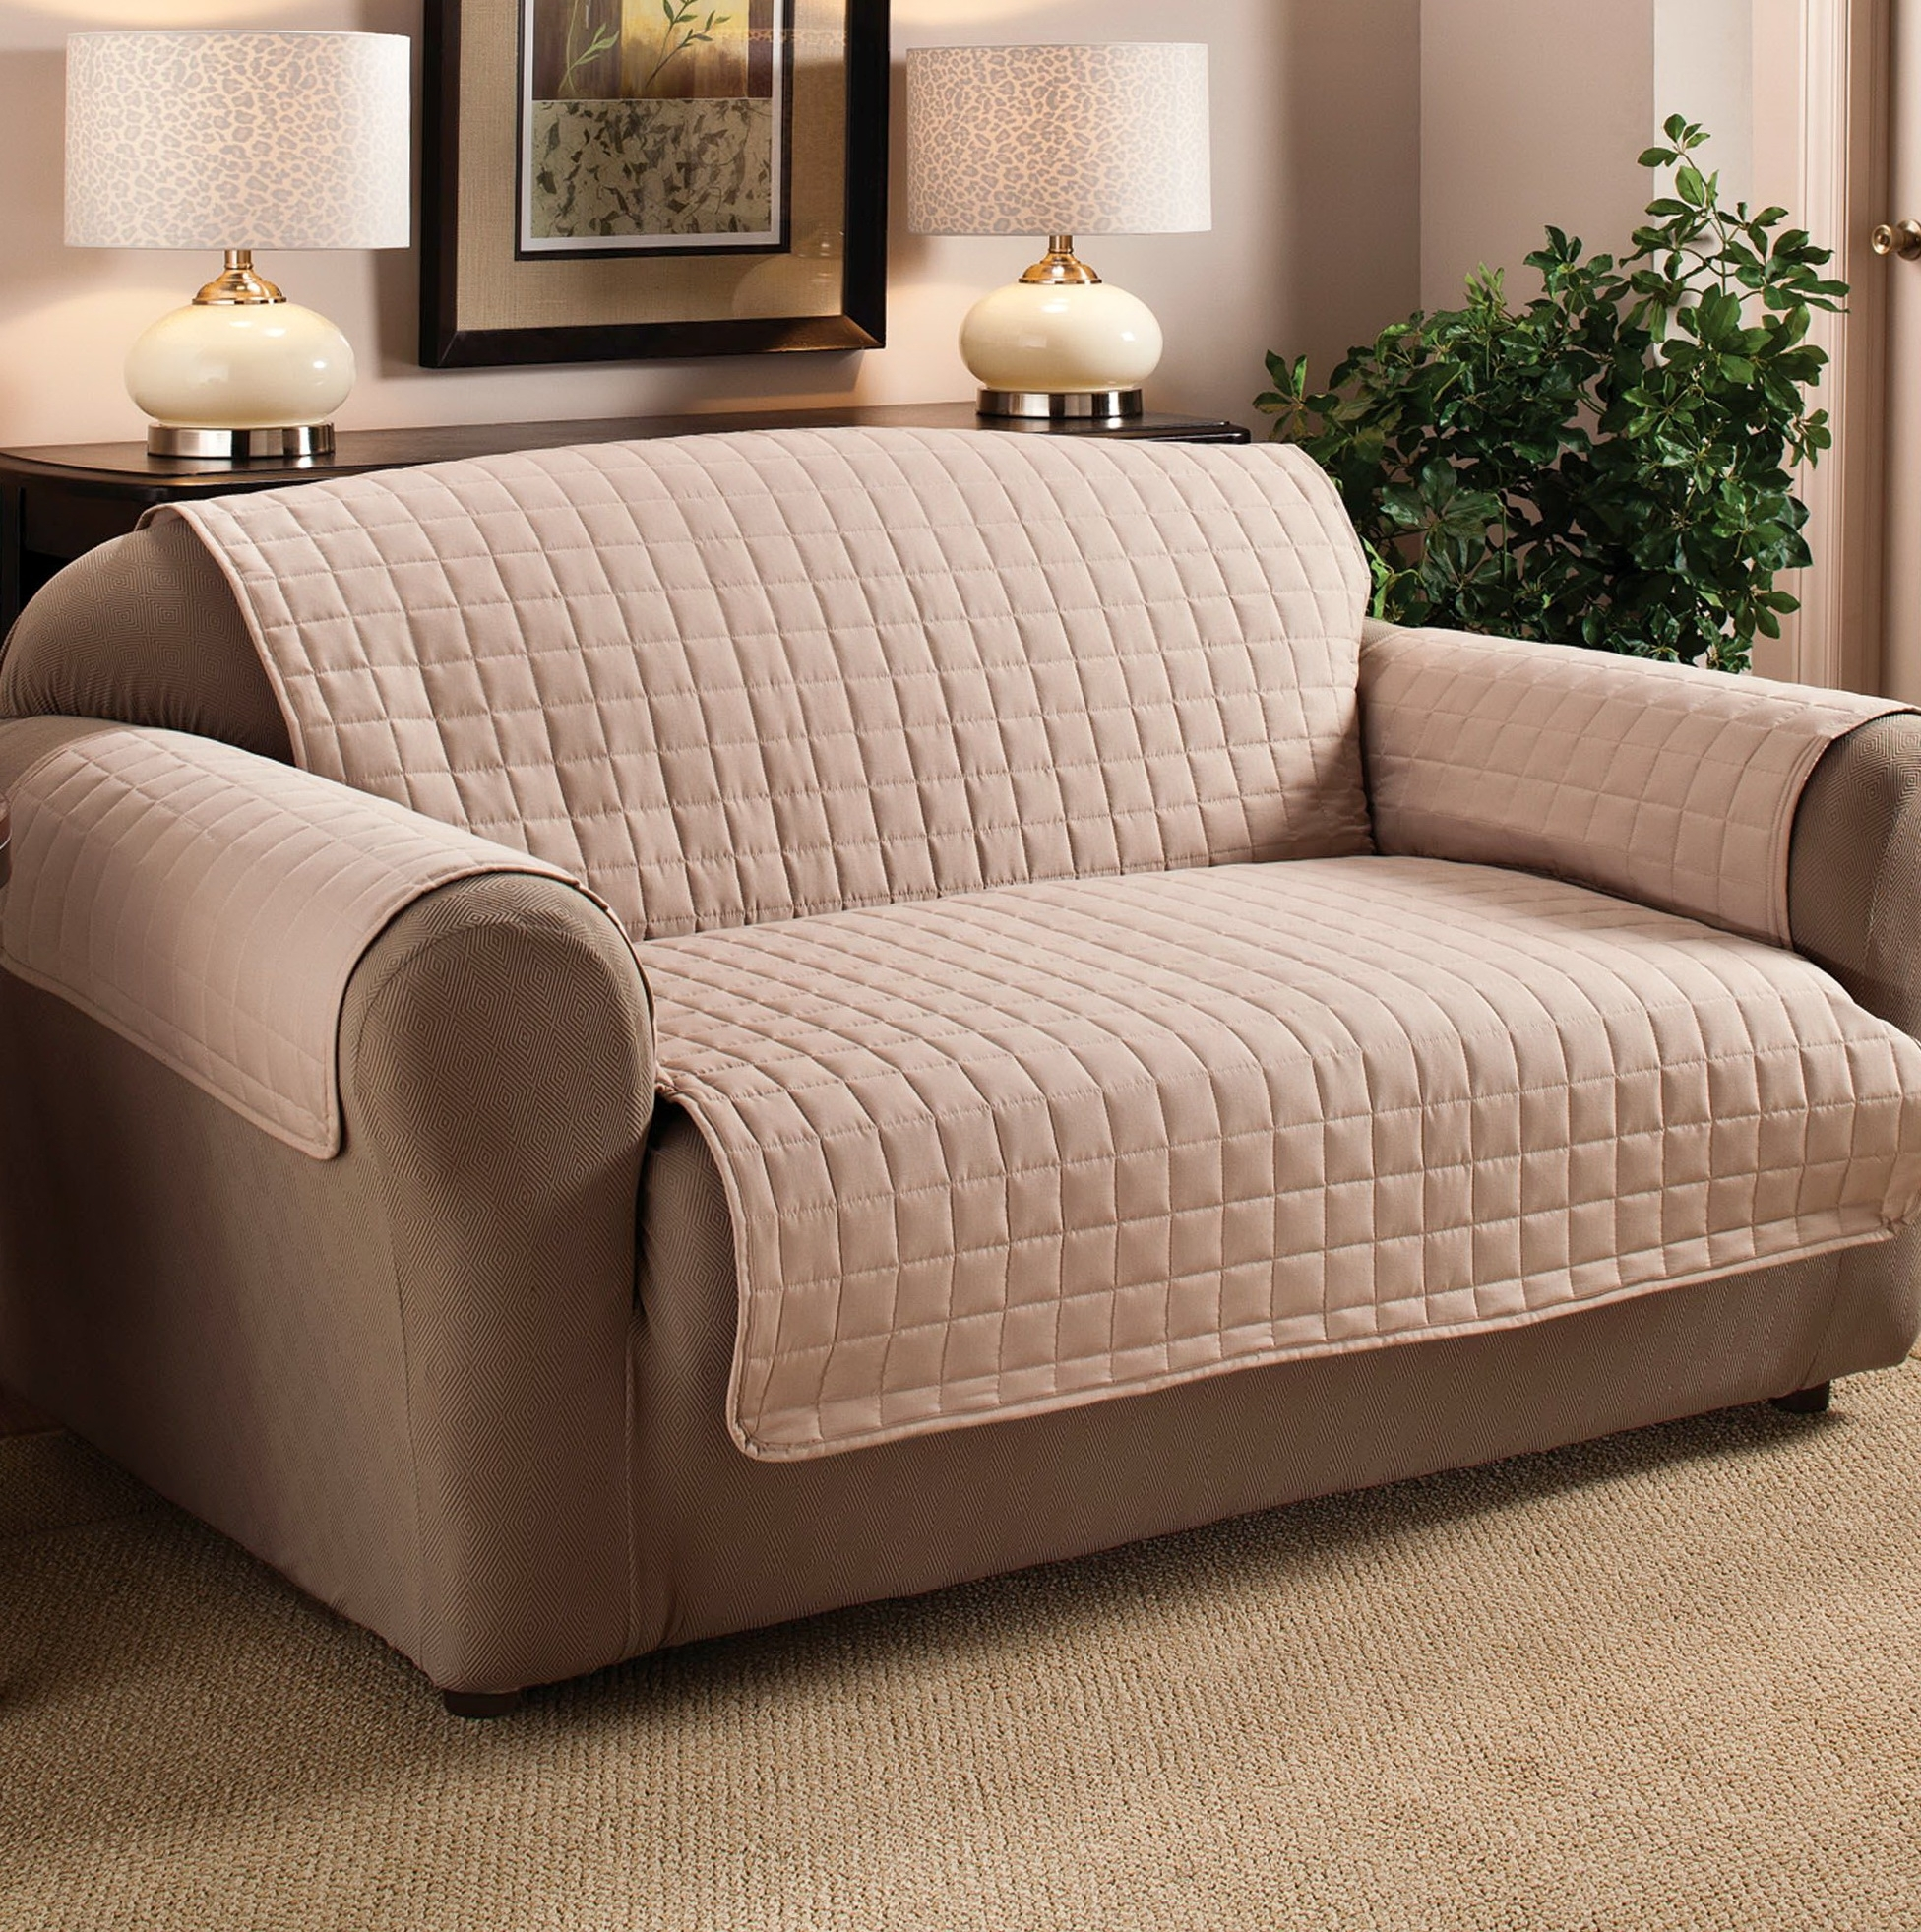 Well Known Chaise Sofa Covers Throughout Lovely Chaise Lounge Sofa Covers 92 Sofas And Couches Ideas With (View 11 of 15)